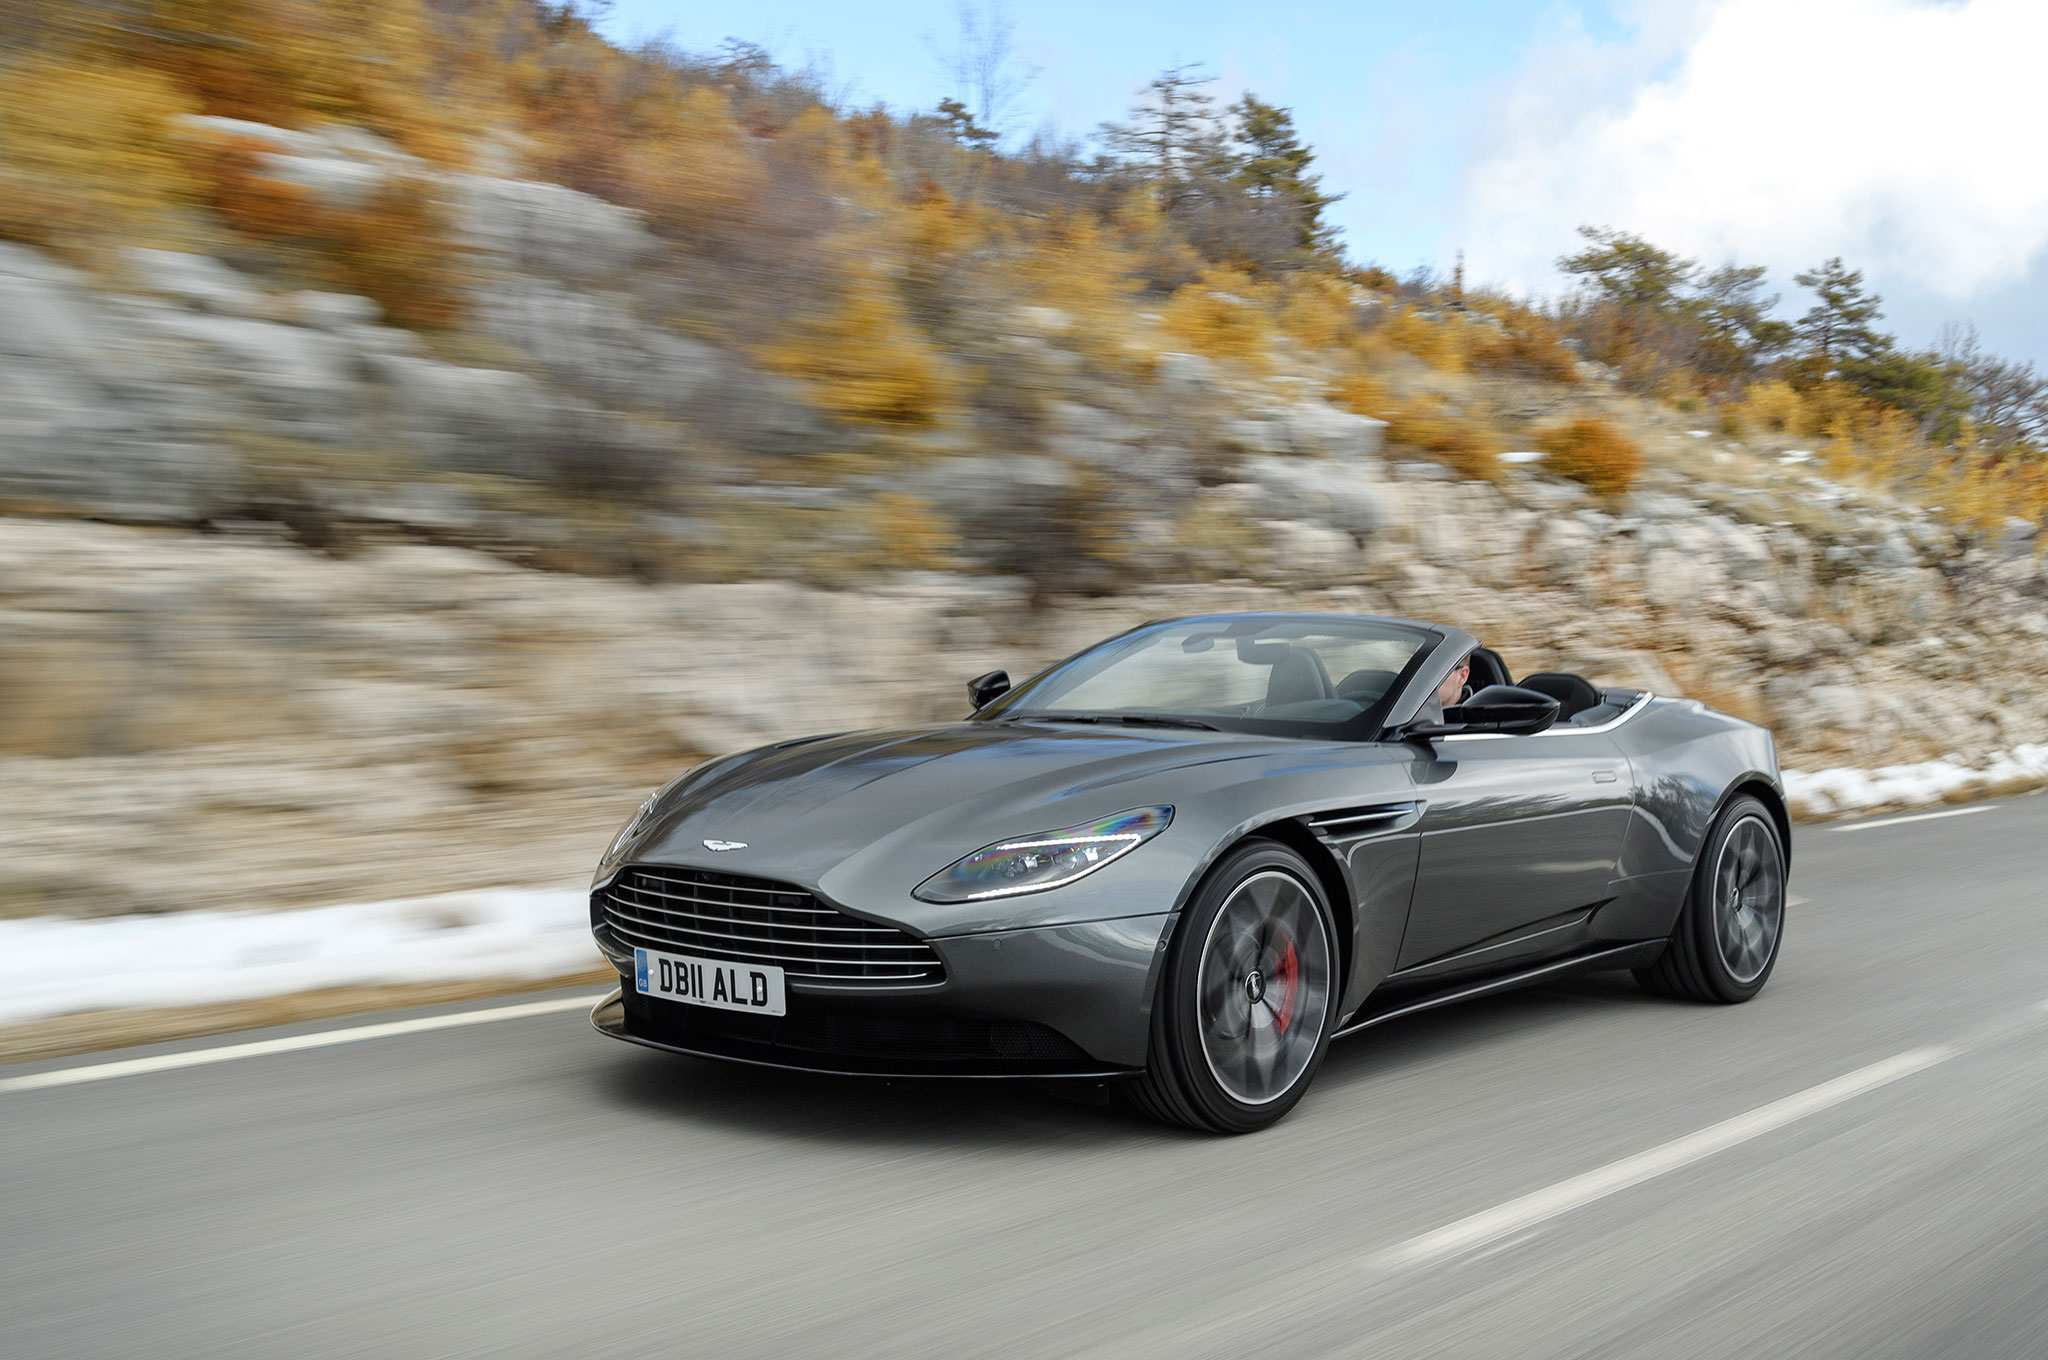 31 Concept of 2019 Aston Martin Db11 Volante Research New with 2019 Aston Martin Db11 Volante